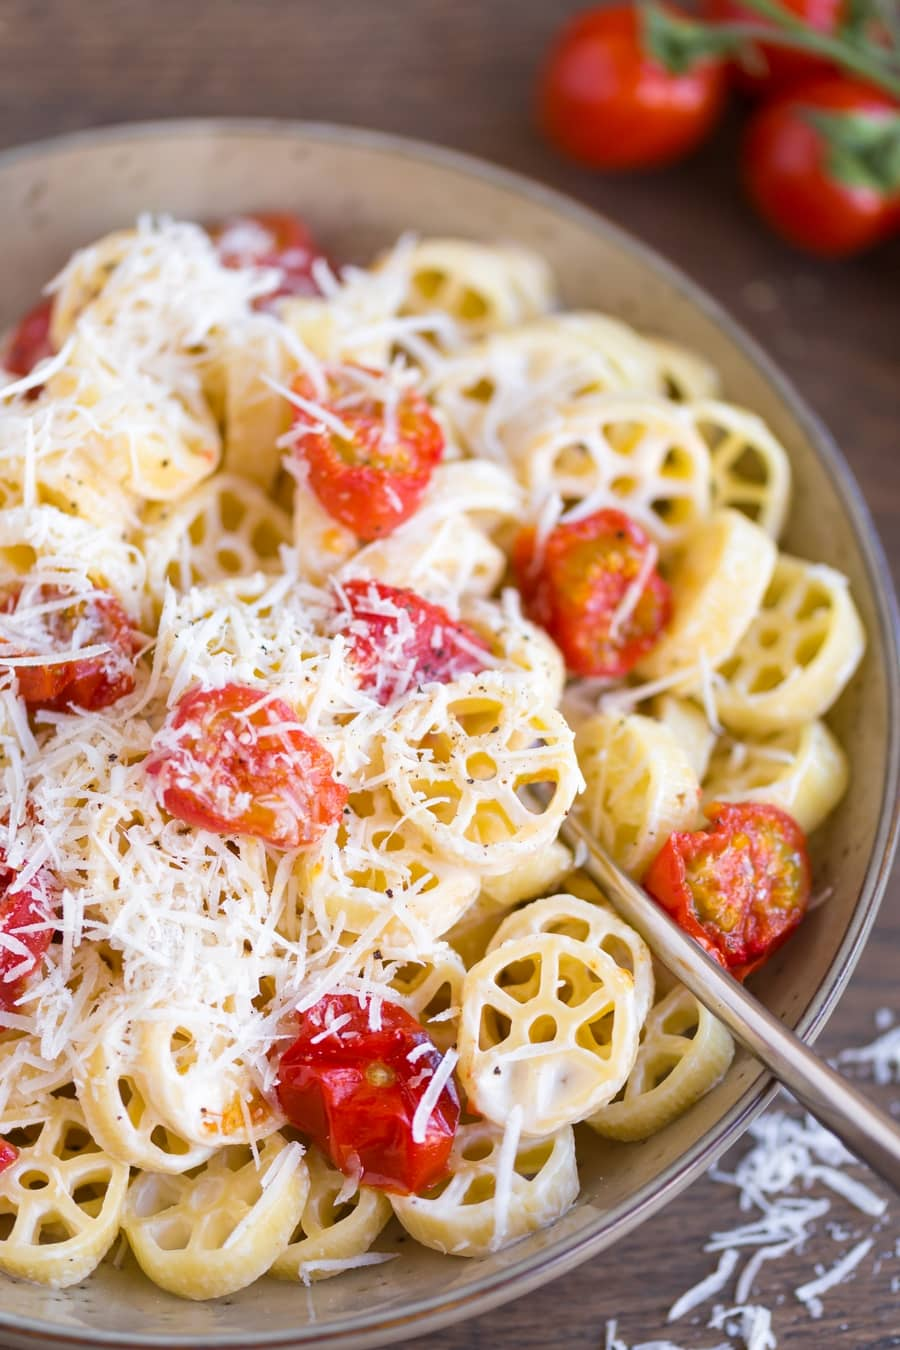 Creamy pasta with overn-roasted cherry tomatoes closeup.